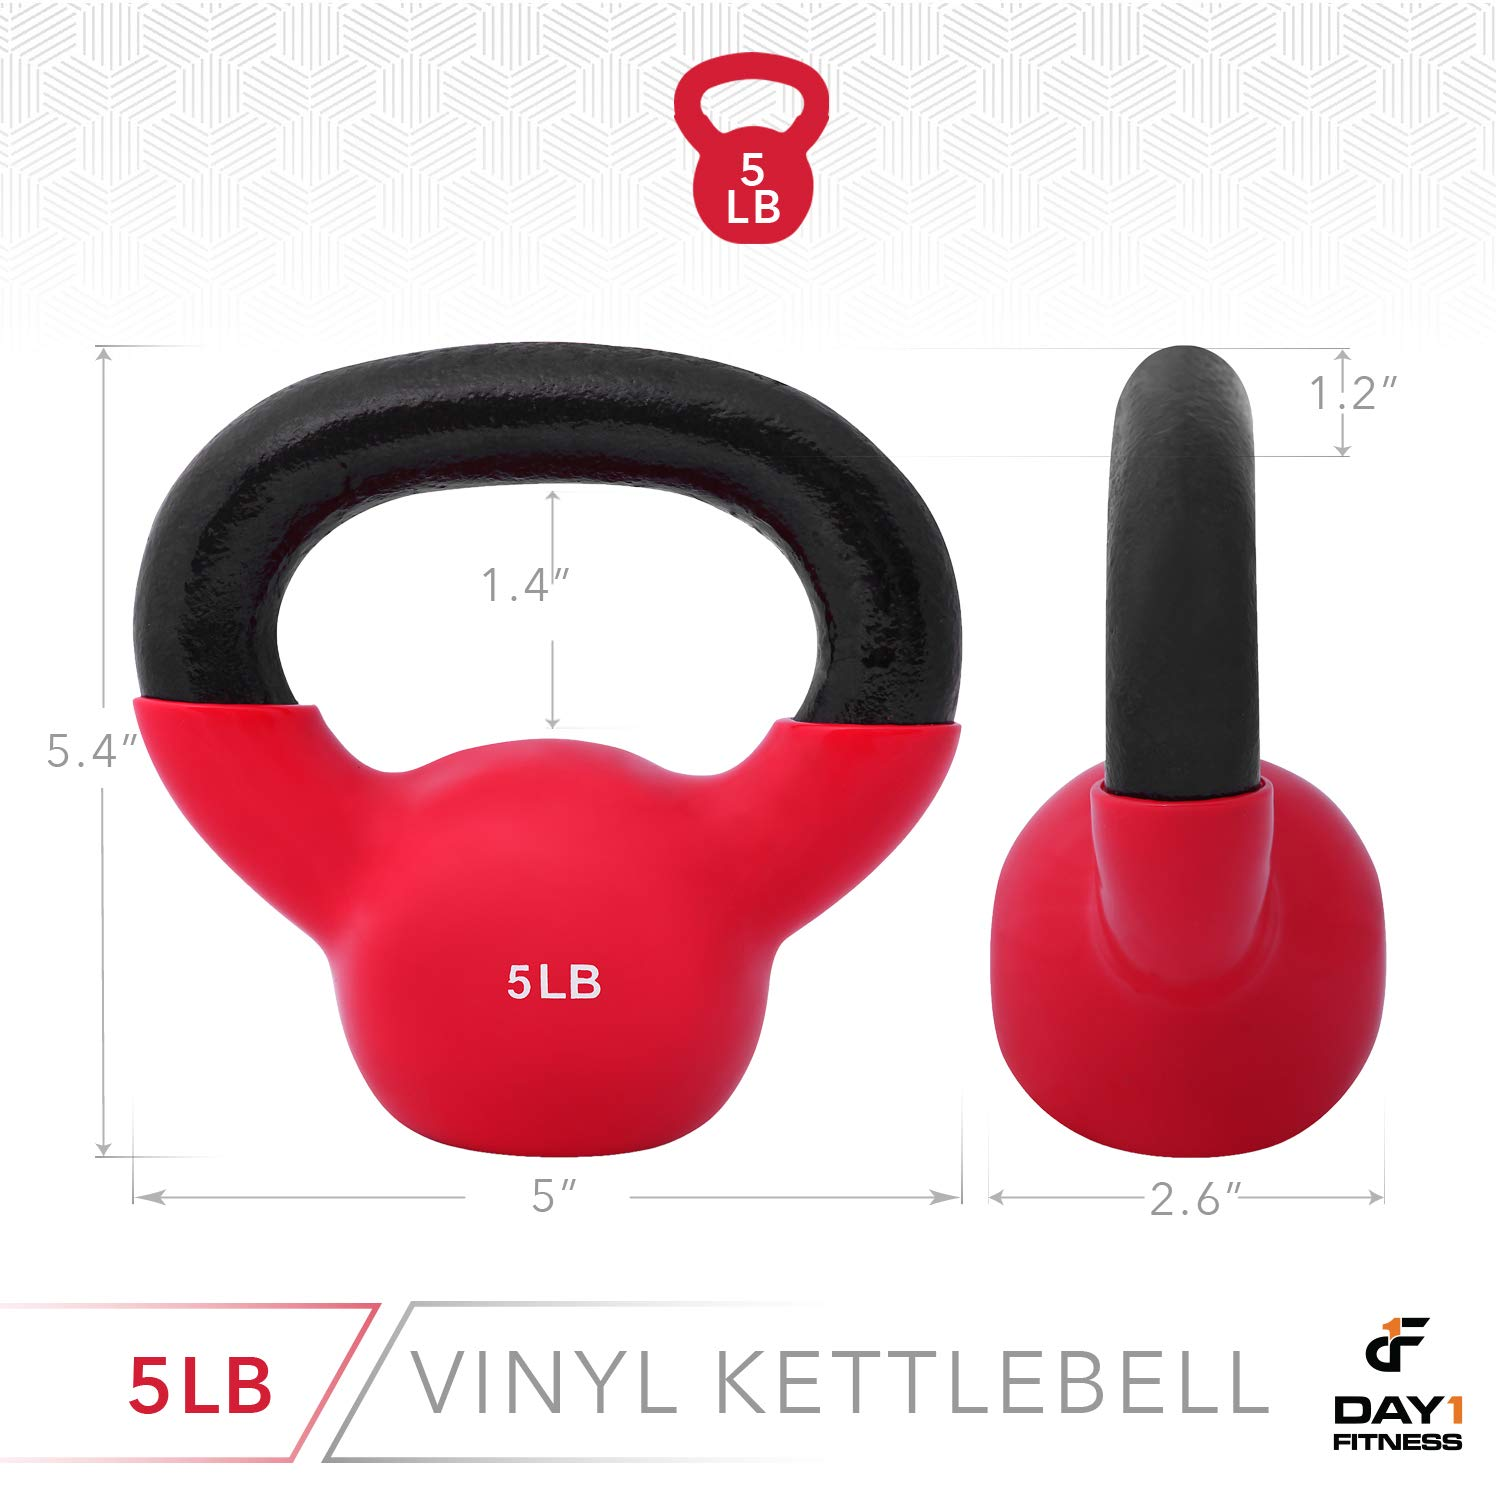 Day 1 Fitness Kettlebell Weights Vinyl Coated Iron 5 Pounds - Coated for Floor and Equipment Protection, Noise Reduction - Free Weights for Ballistic, Core, Weight Training by Day 1 Fitness (Image #3)